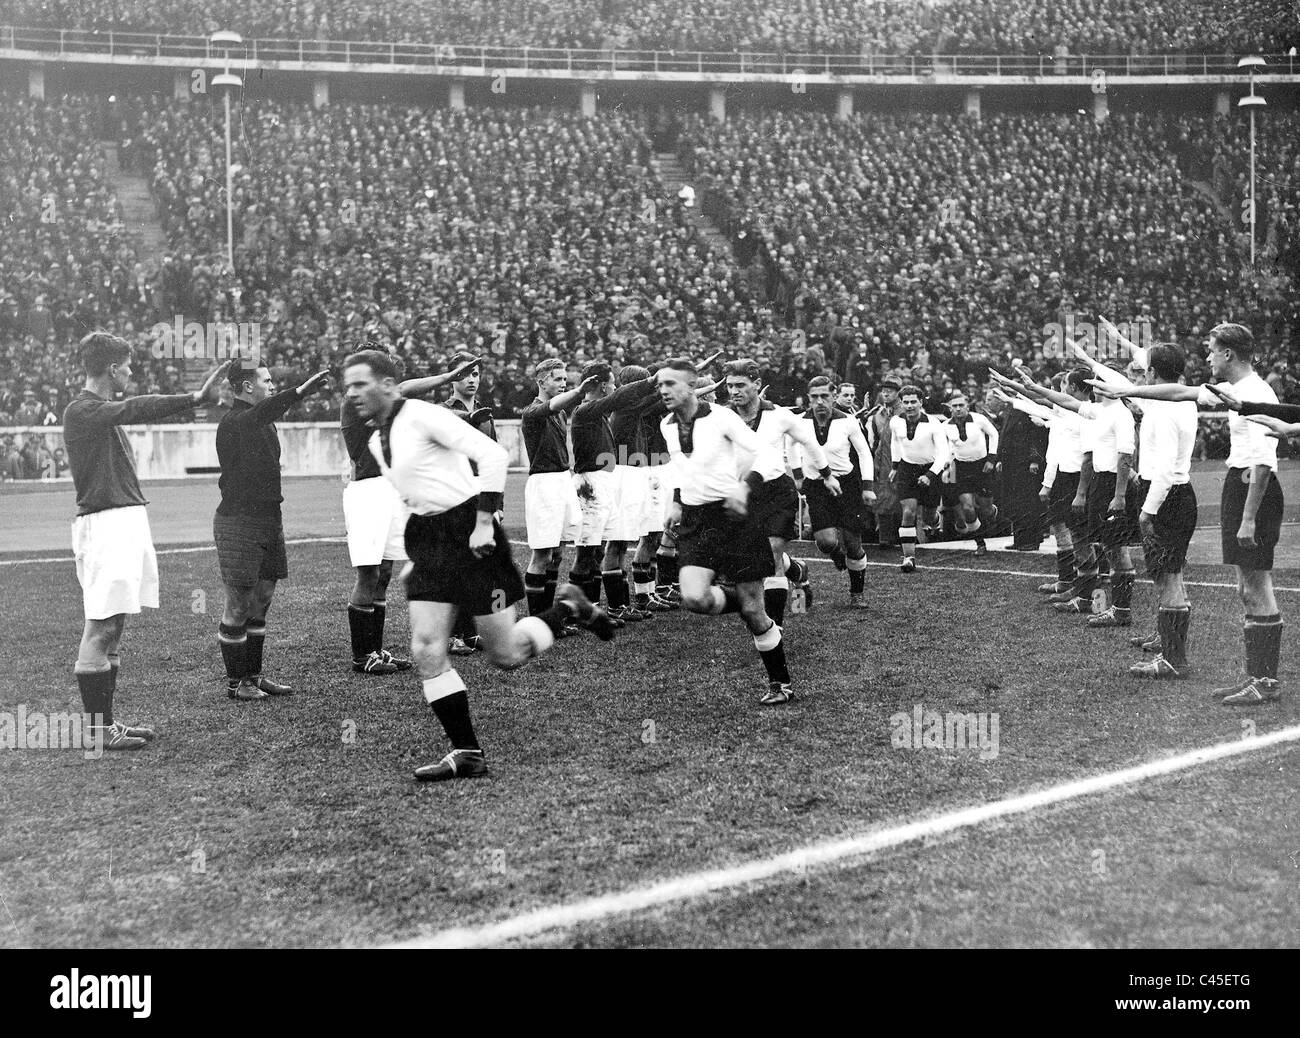 Football game: Germany versus Italy - Stock Image